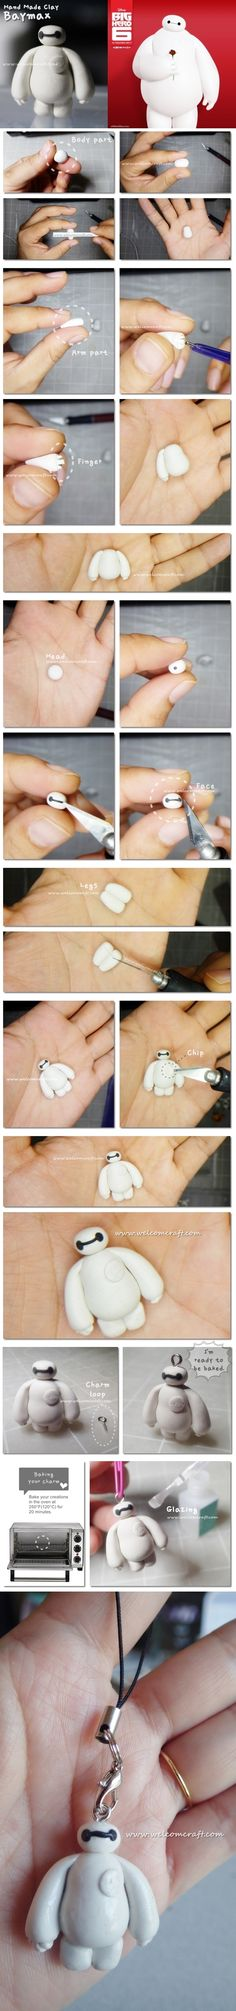 How to make clay Big Hero 6 Baymax step by step tutorial instruction.